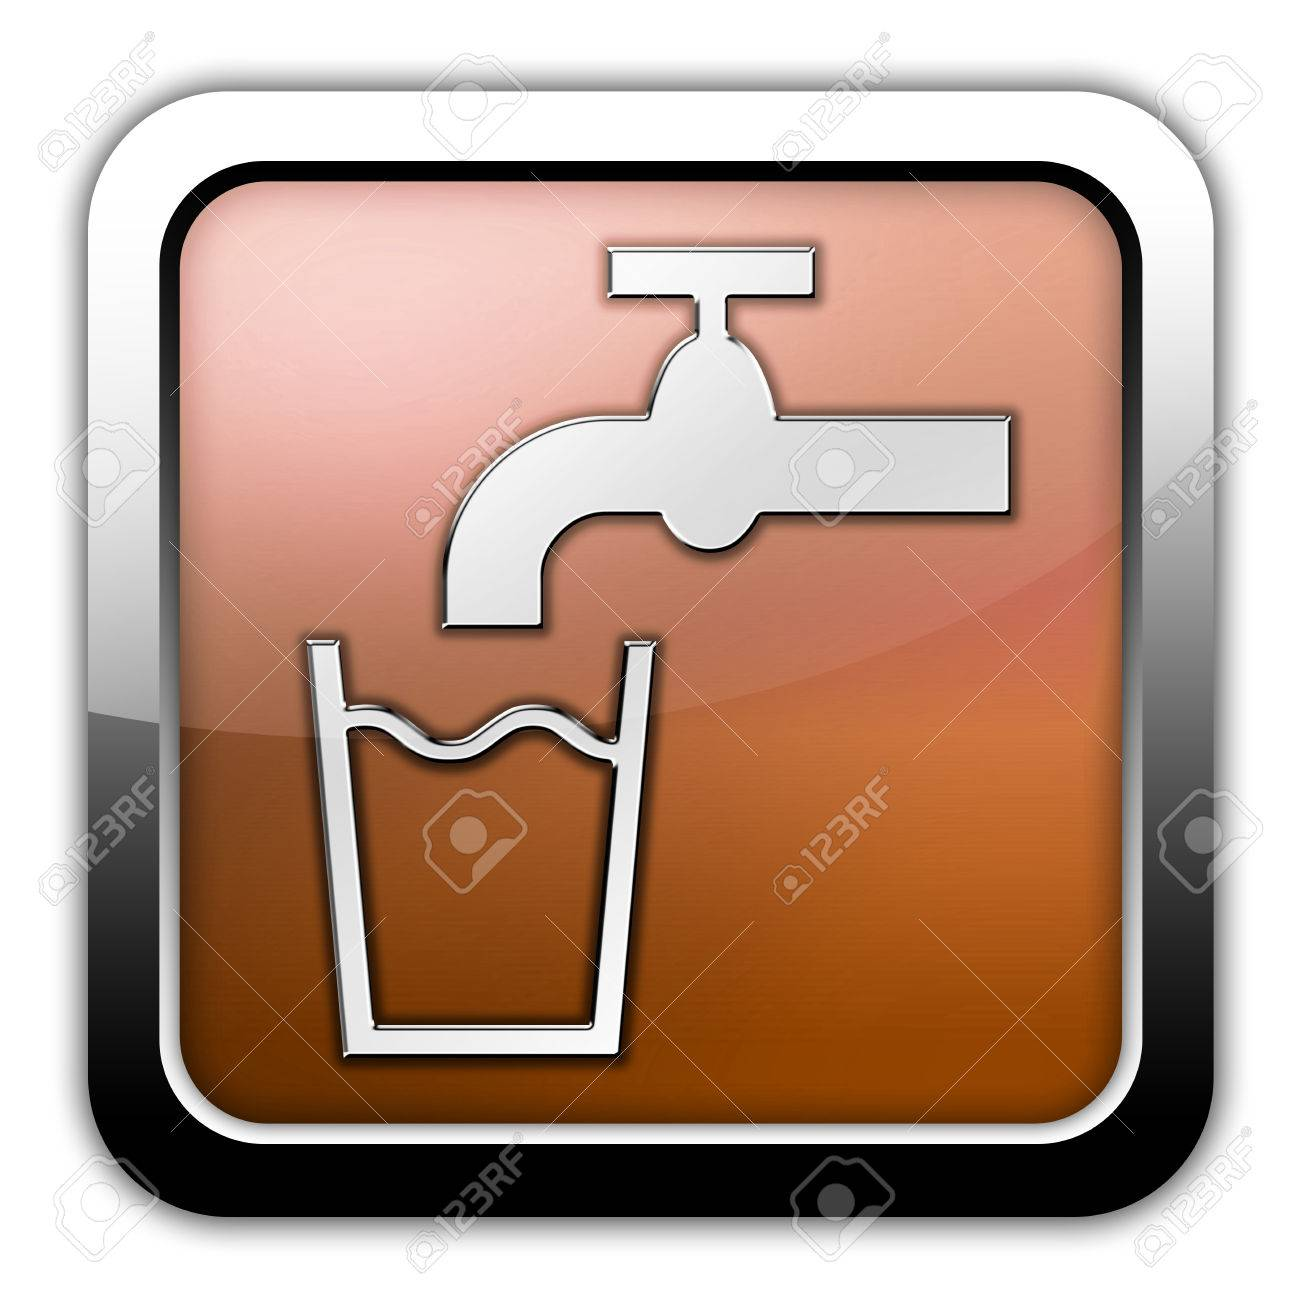 Icon Button Pictogram With Running Water Symbol Stock Photo